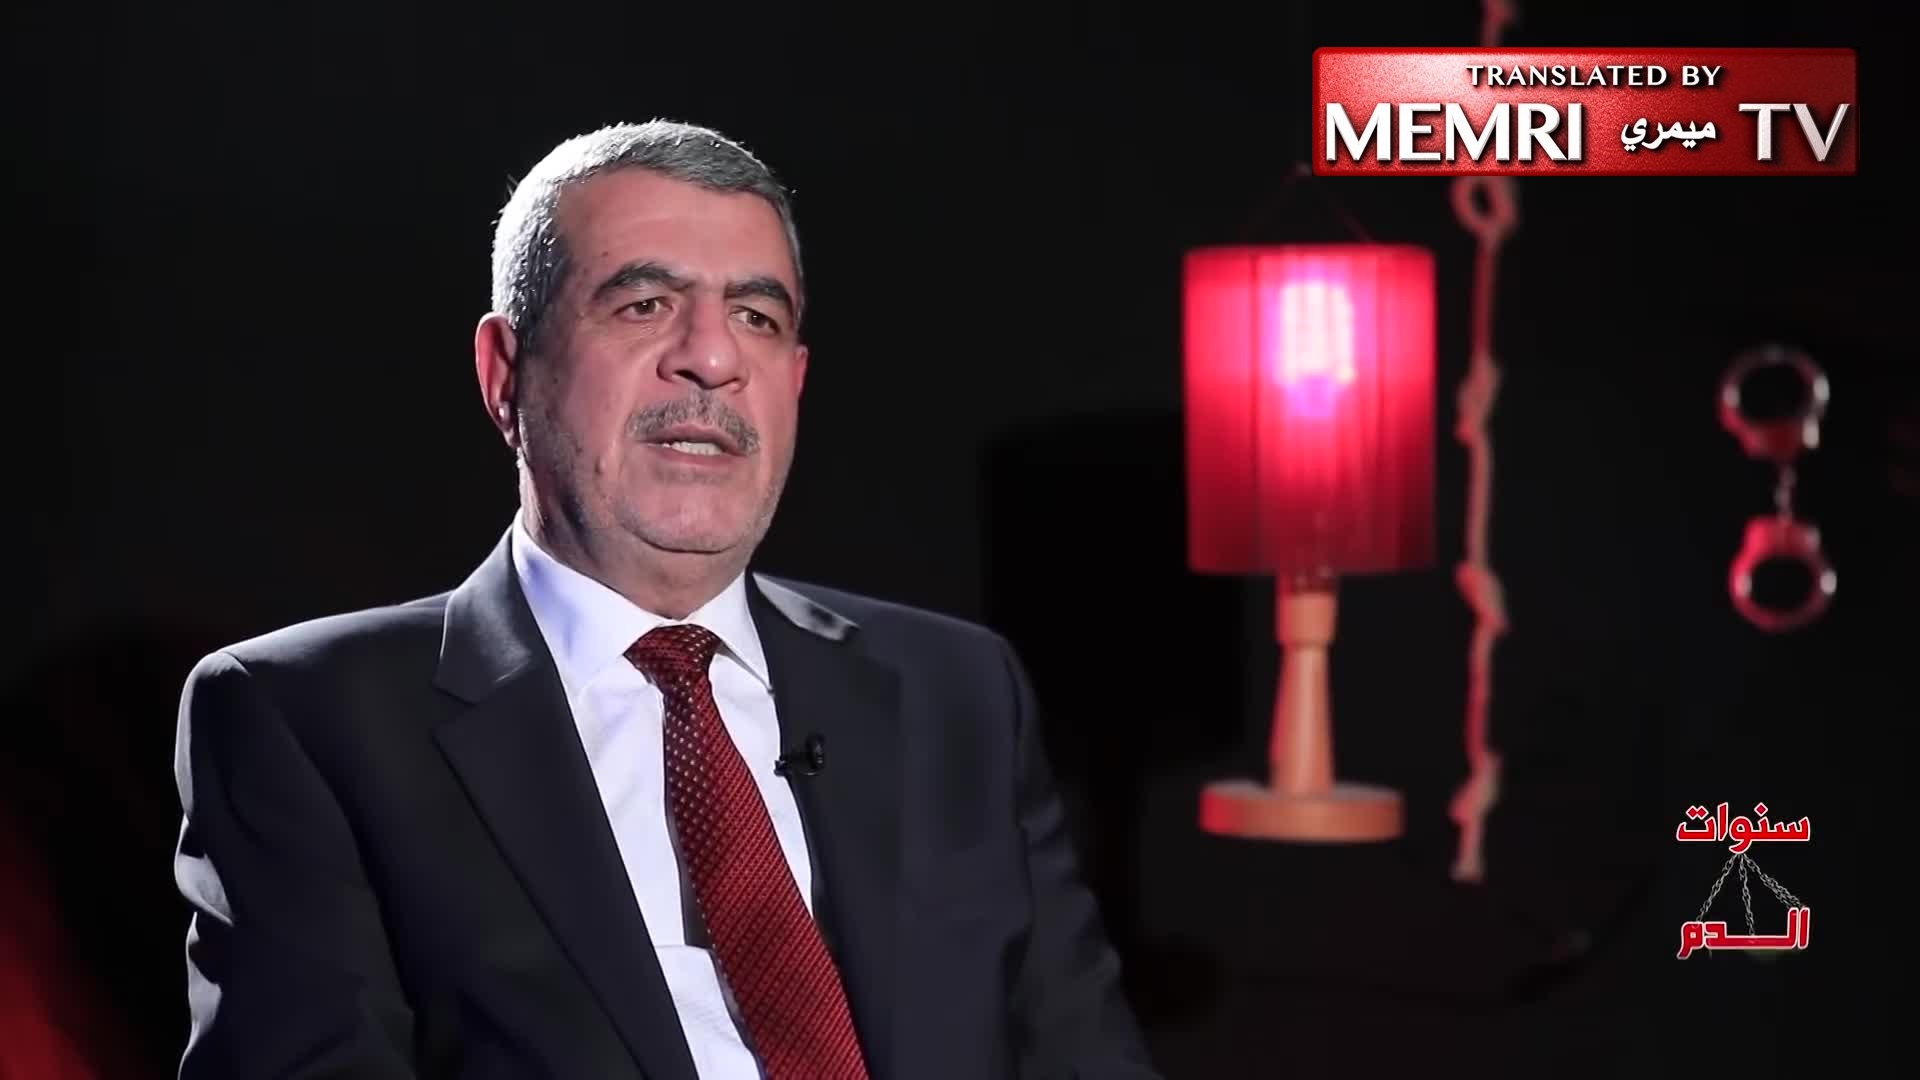 Iraqi MP Khalaf Abdelsamad Khalaf: Hitler Was No Worse than Saddam